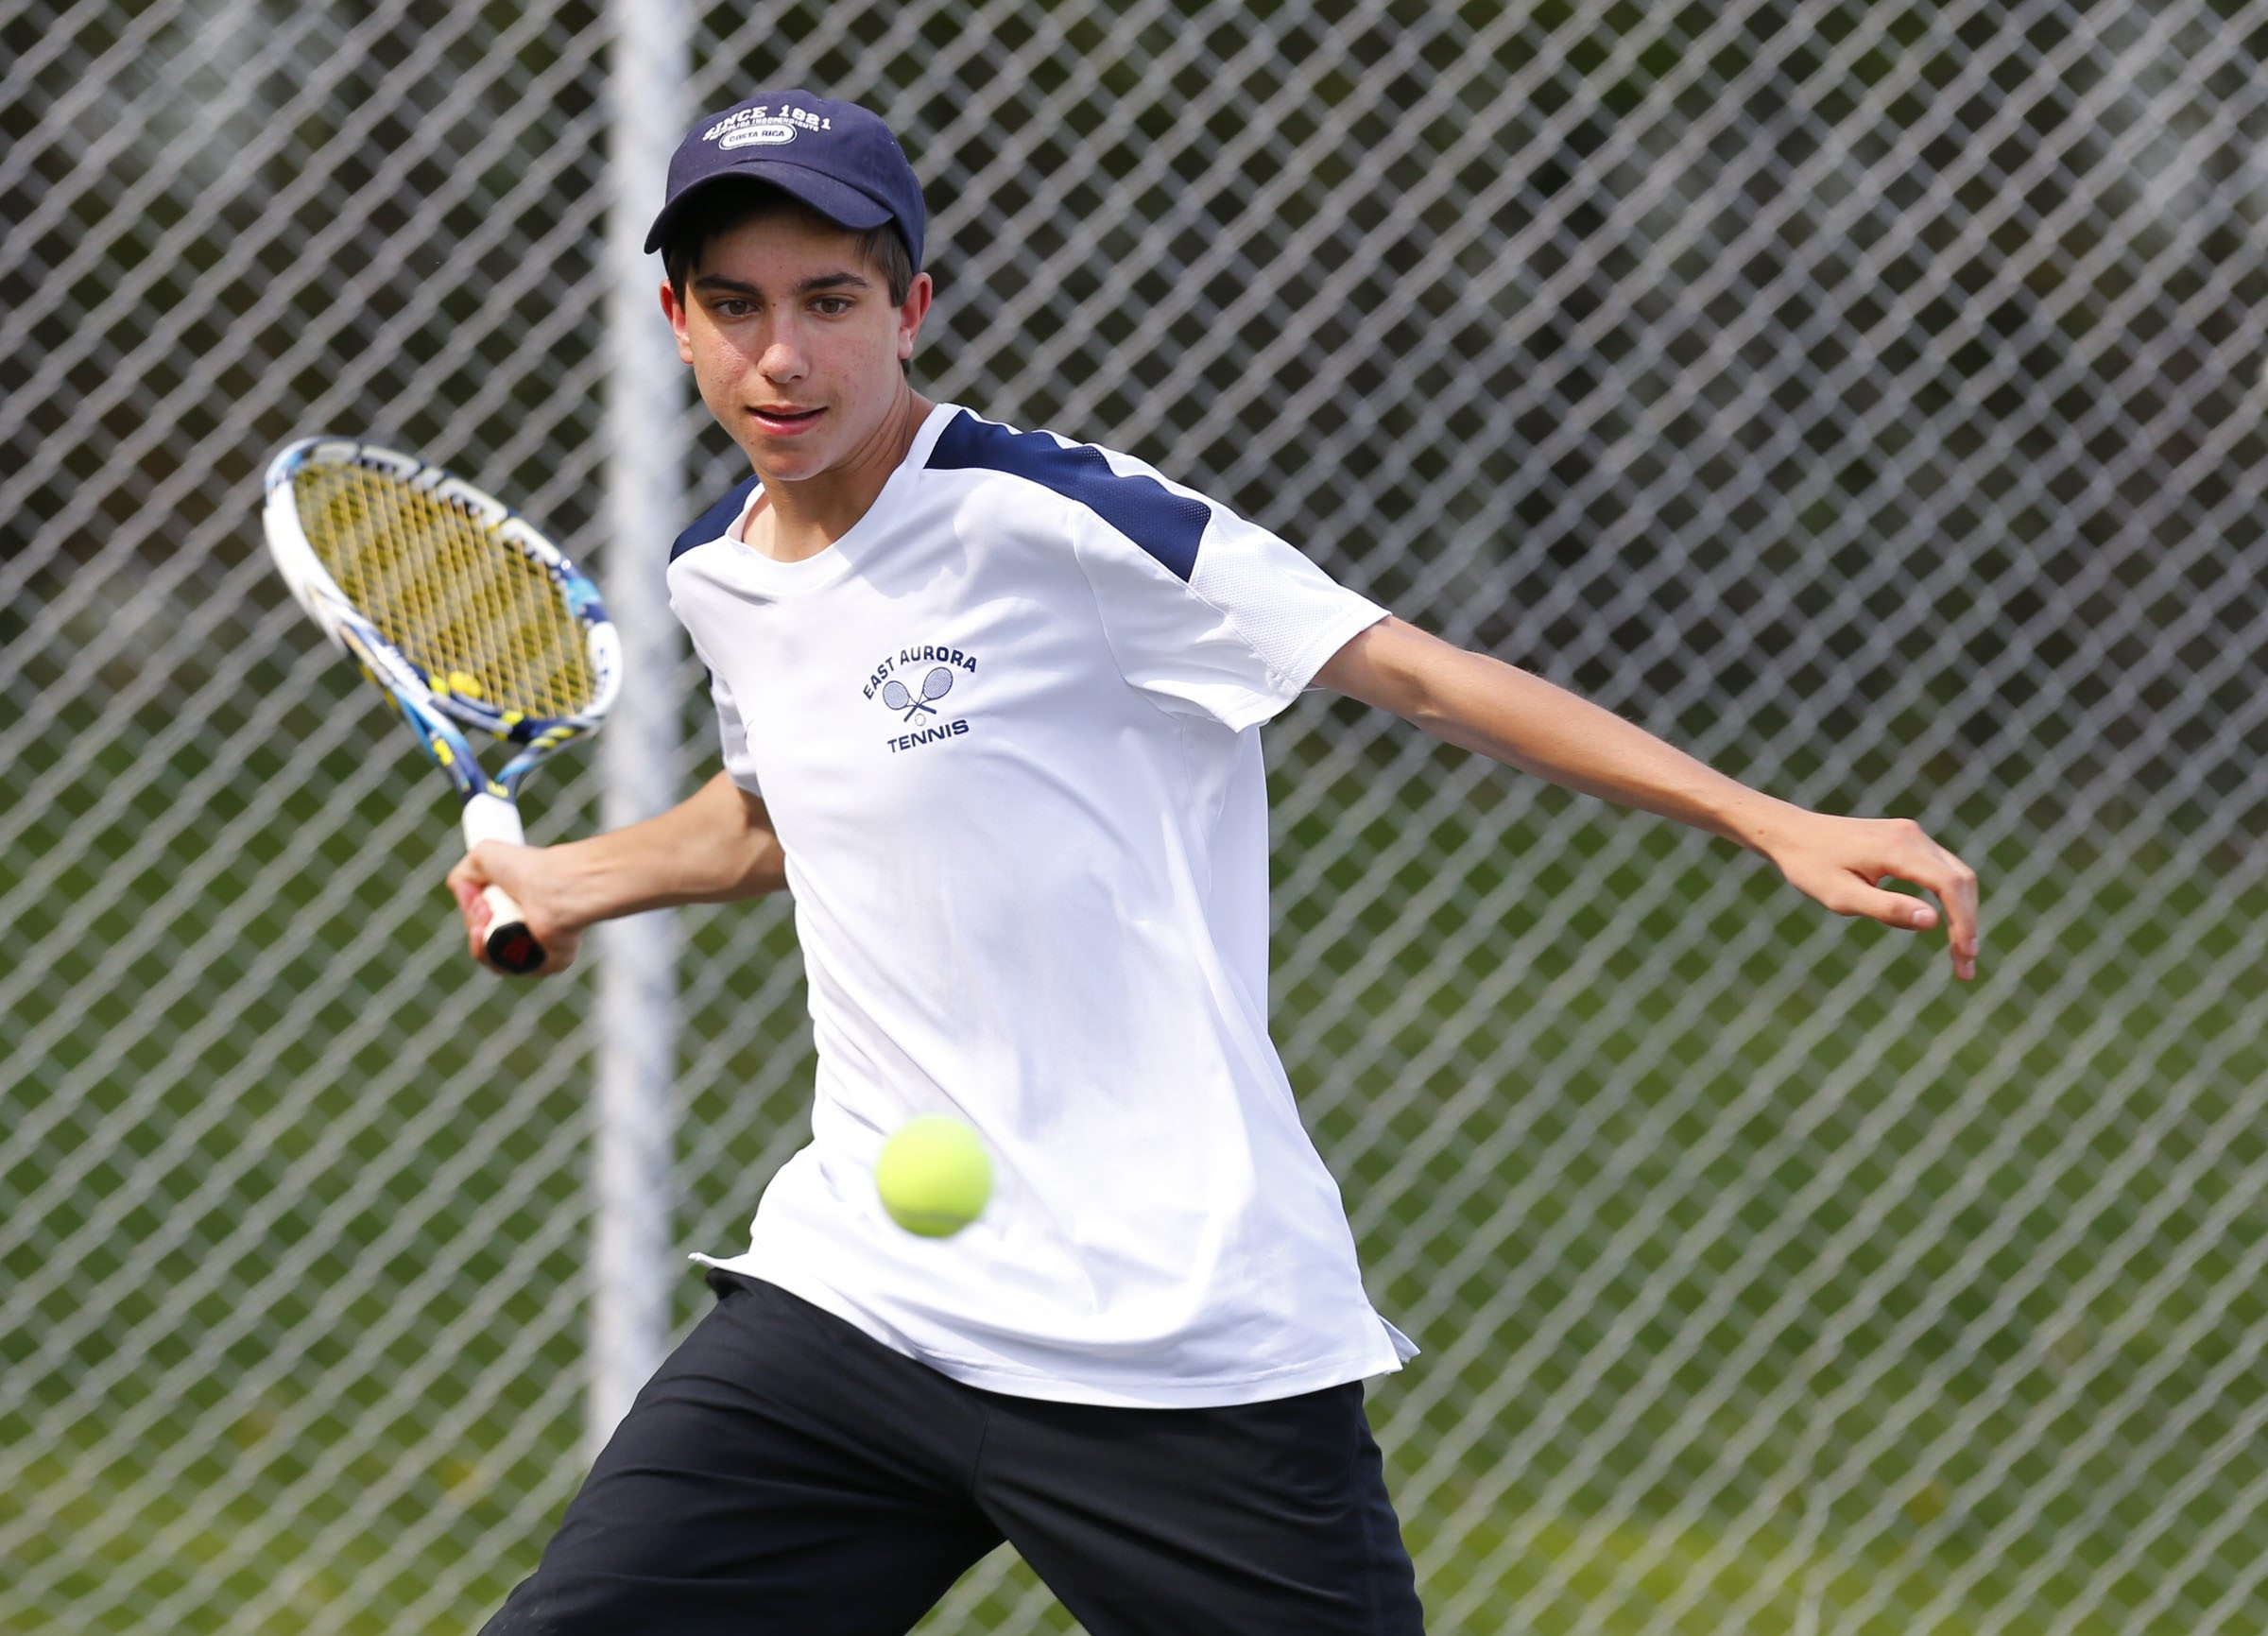 Jack McClaren is back on the courts for East Aurora as the returning Section VI champion and has helped the Blue Devils to a 7-1 record this year.